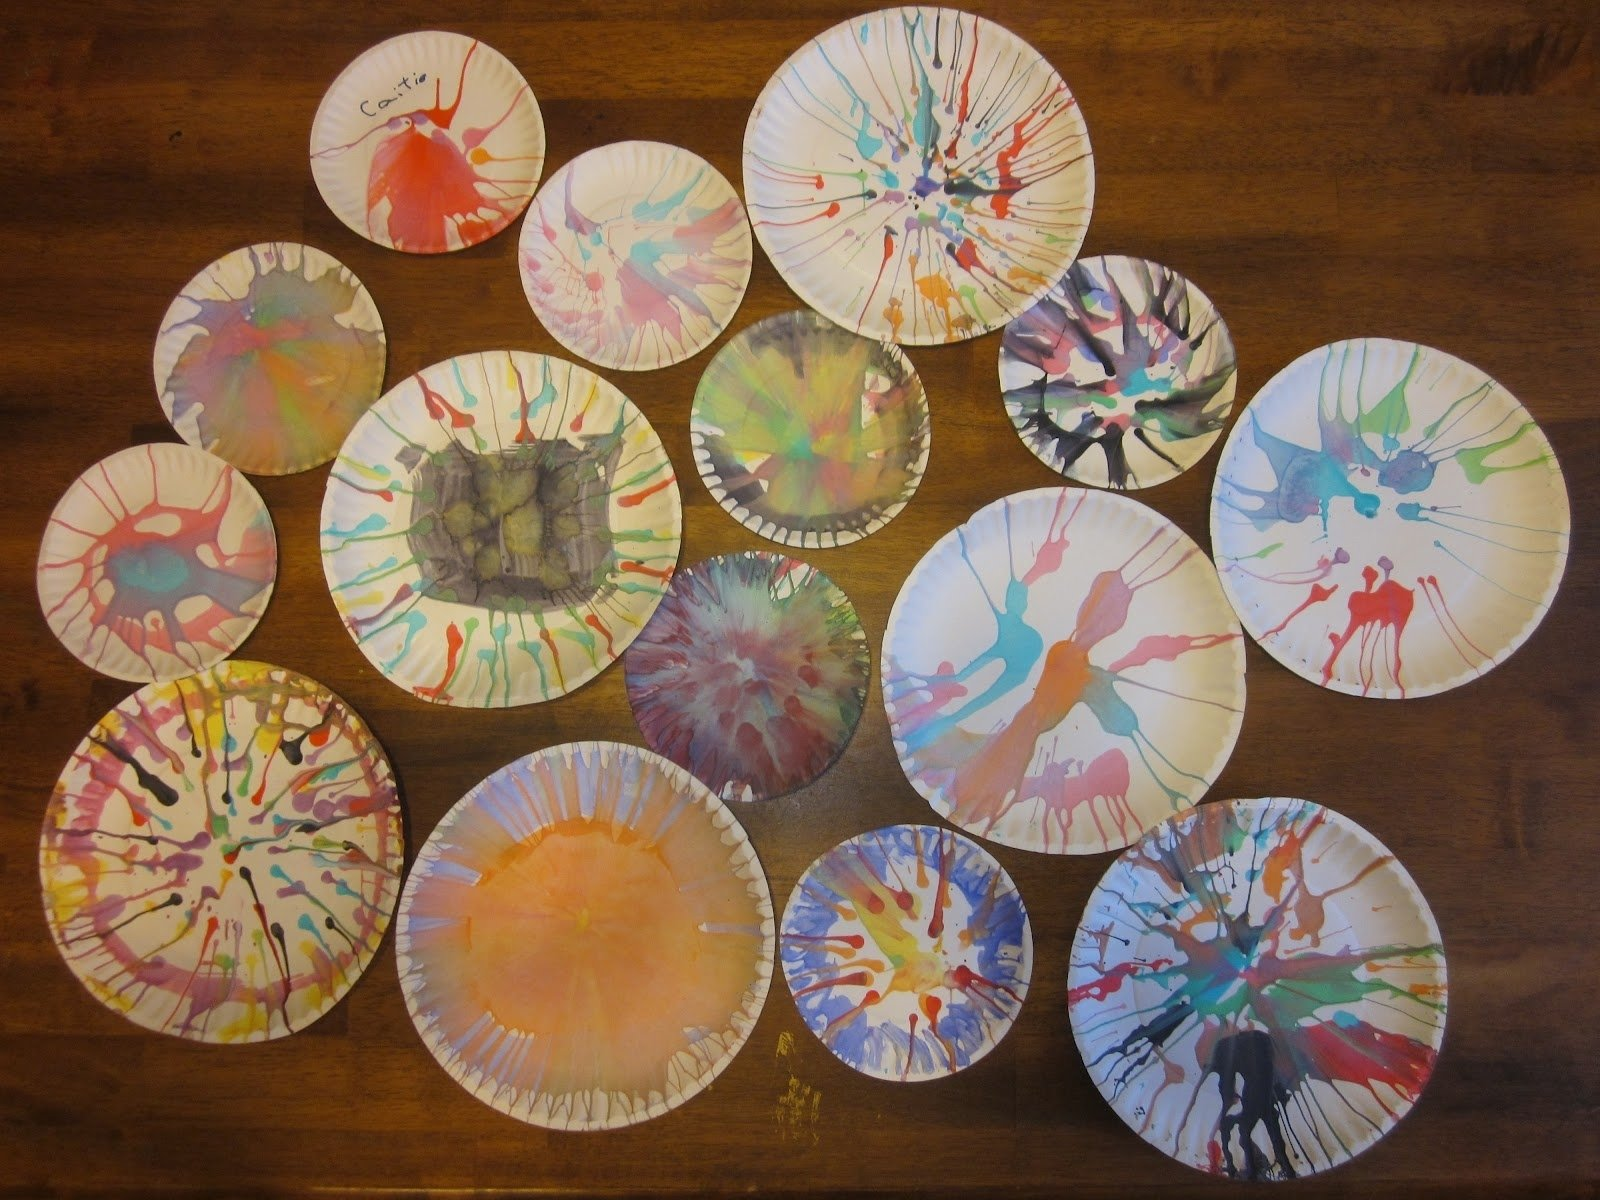 10 Attractive Art And Craft Ideas For Adults easy crafts adults pinterest tierra este 38021 2 2021